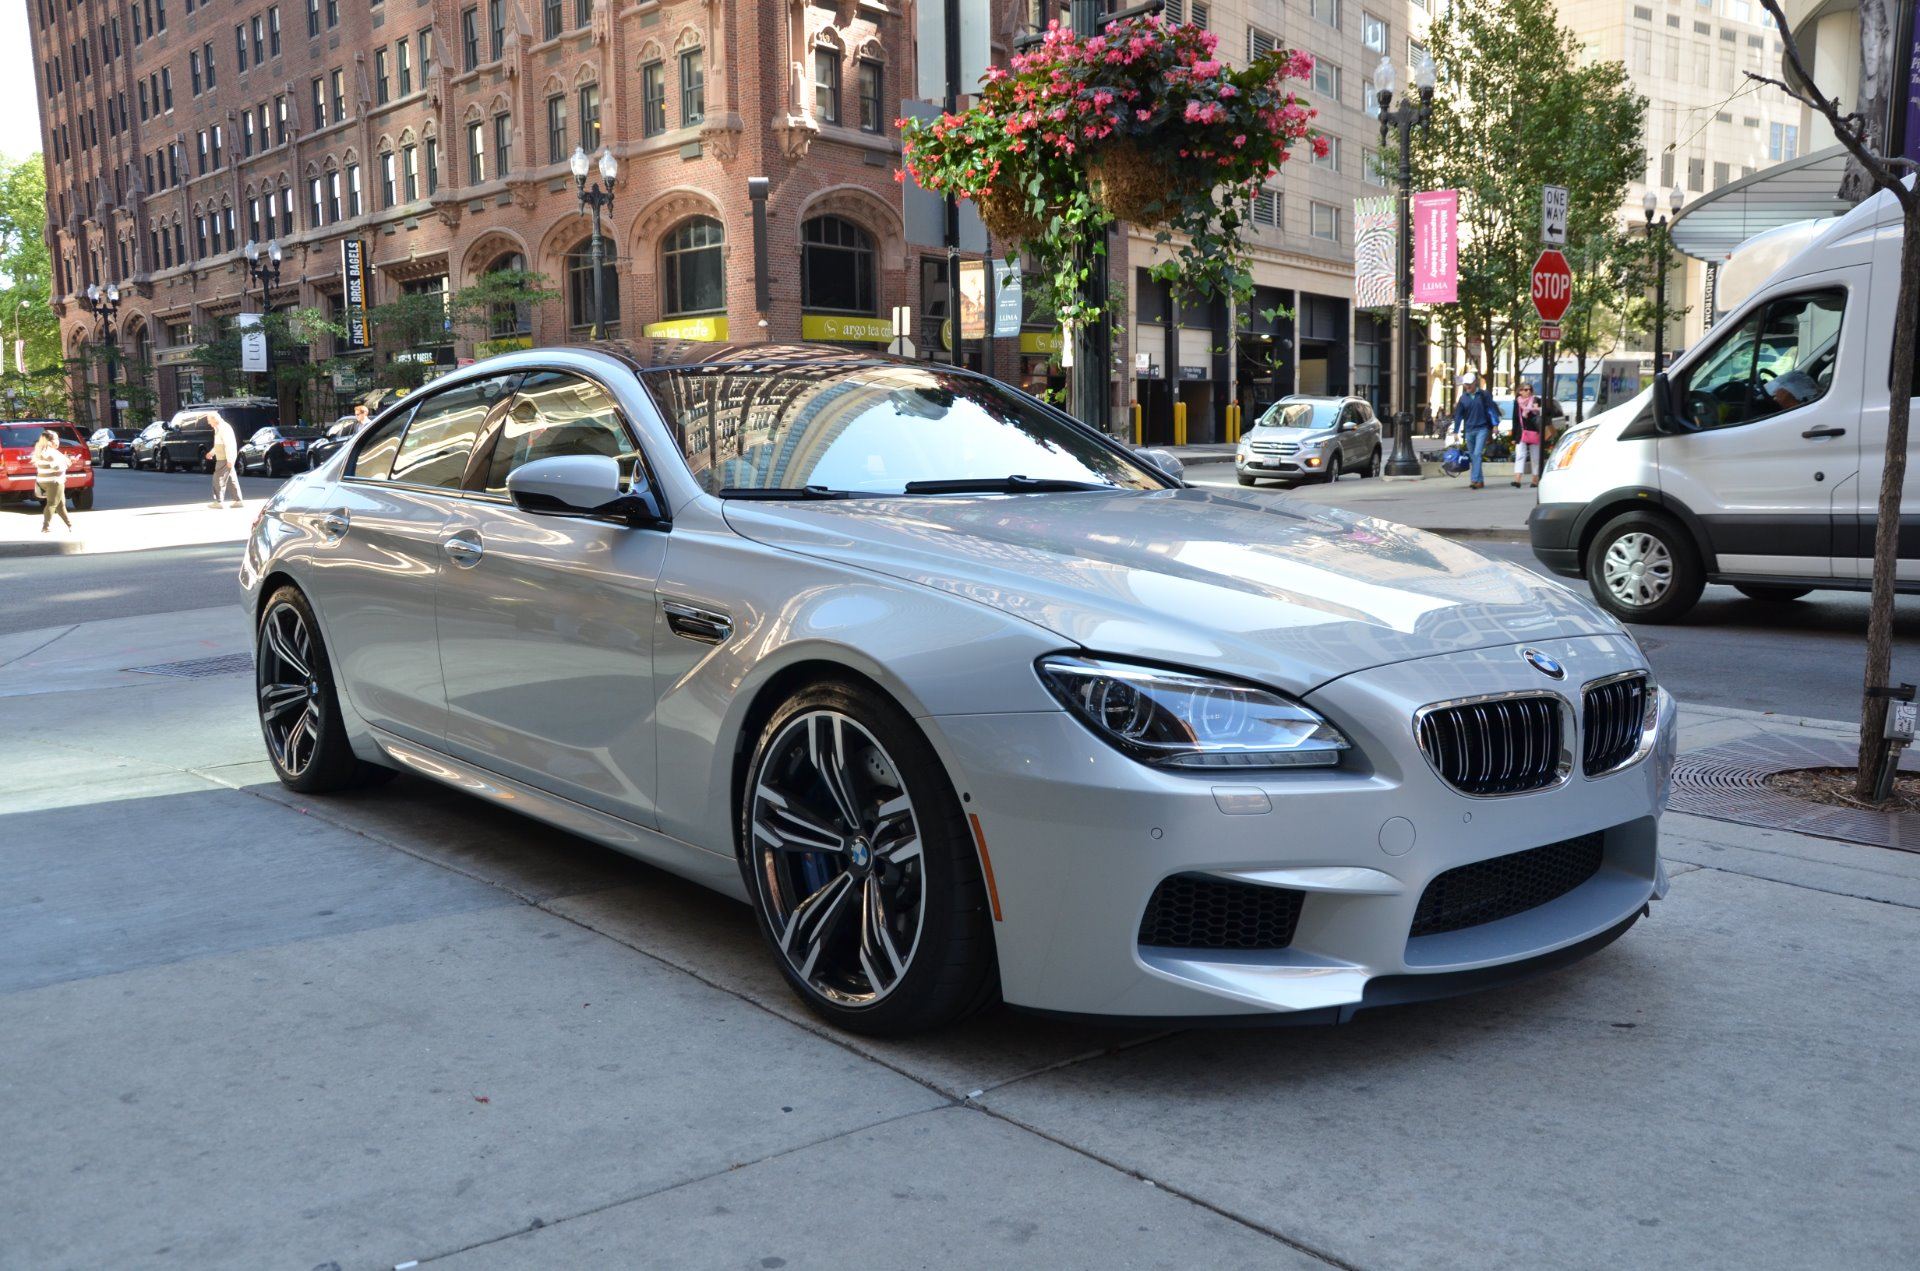 2015 bmw m6 gran coupe stock b920a for sale near chicago. Black Bedroom Furniture Sets. Home Design Ideas